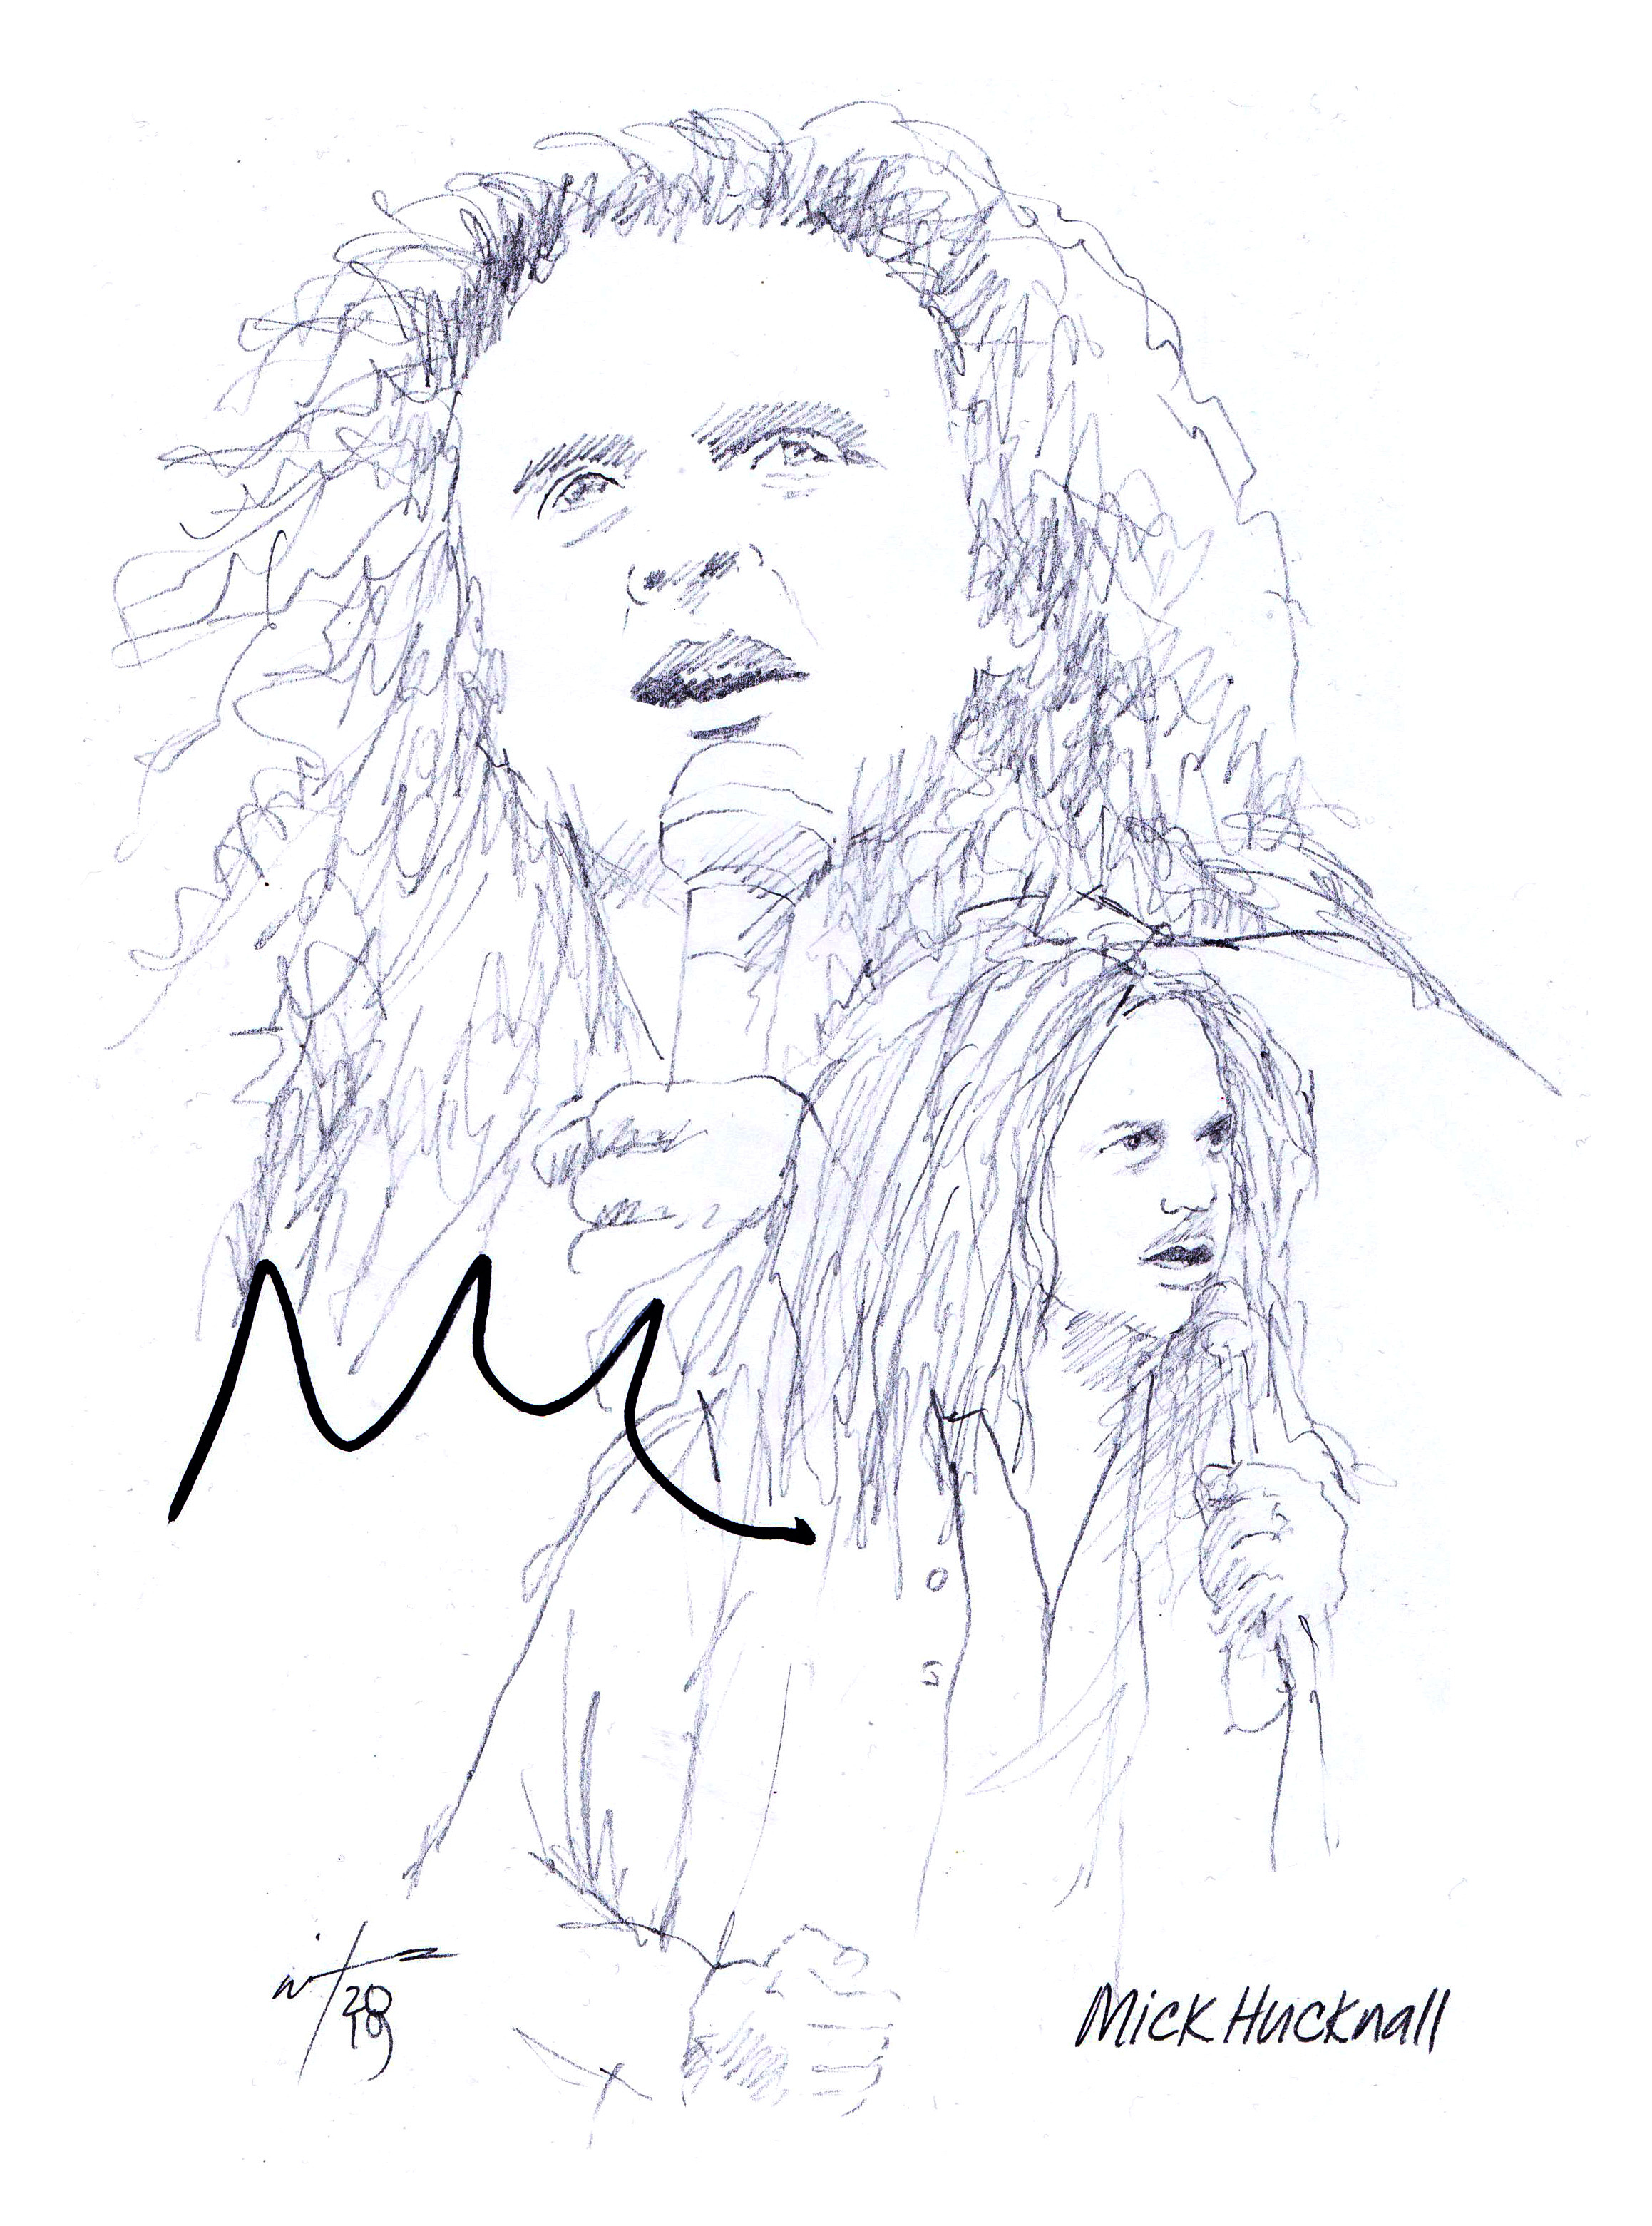 Autographed drawing of Mick Hucknall